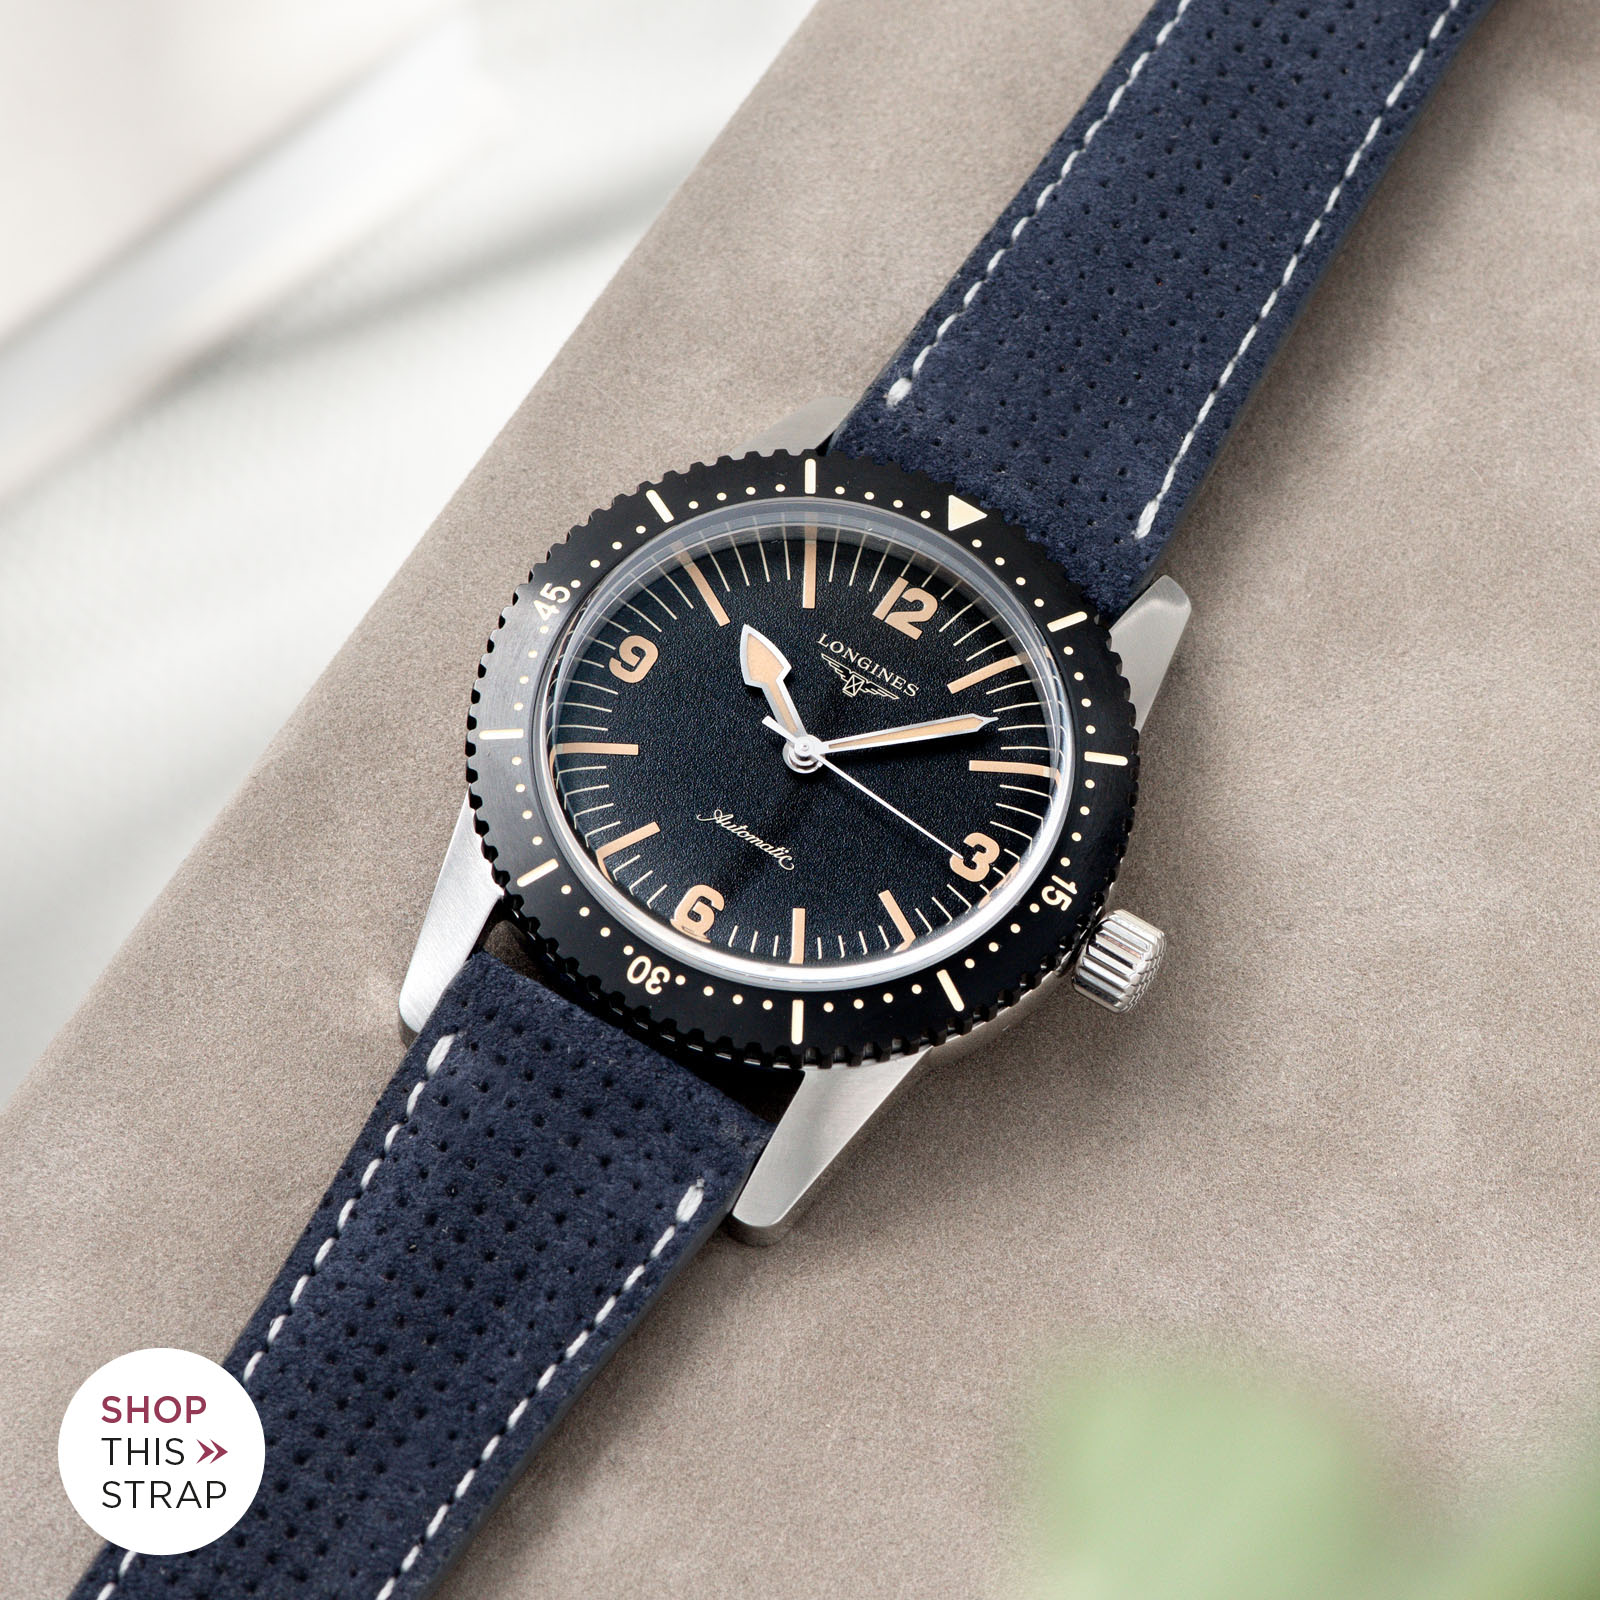 Bulang and Sons_Strap Guide_Longines Skin Diver_Punched Blue Silky Suede Leather Watch Strap